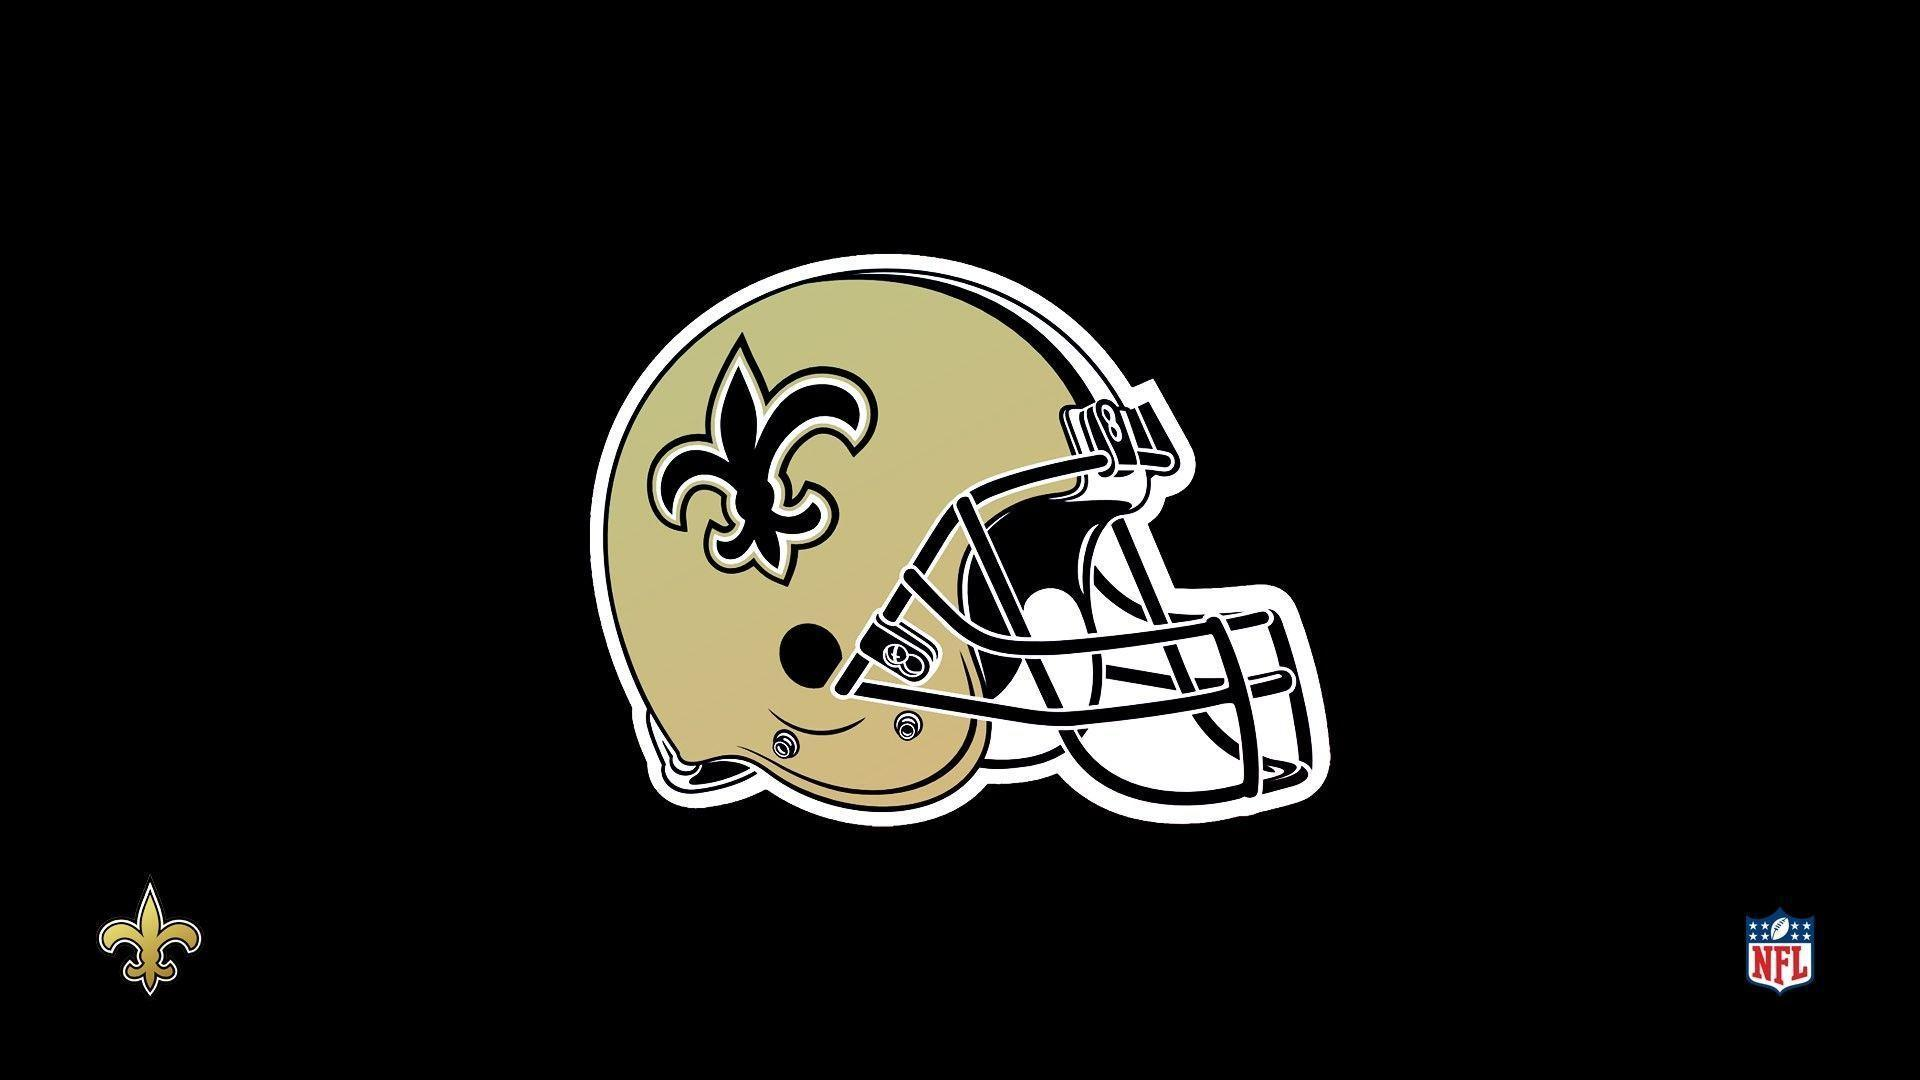 New Orleans Saints wallpapers backgrounds